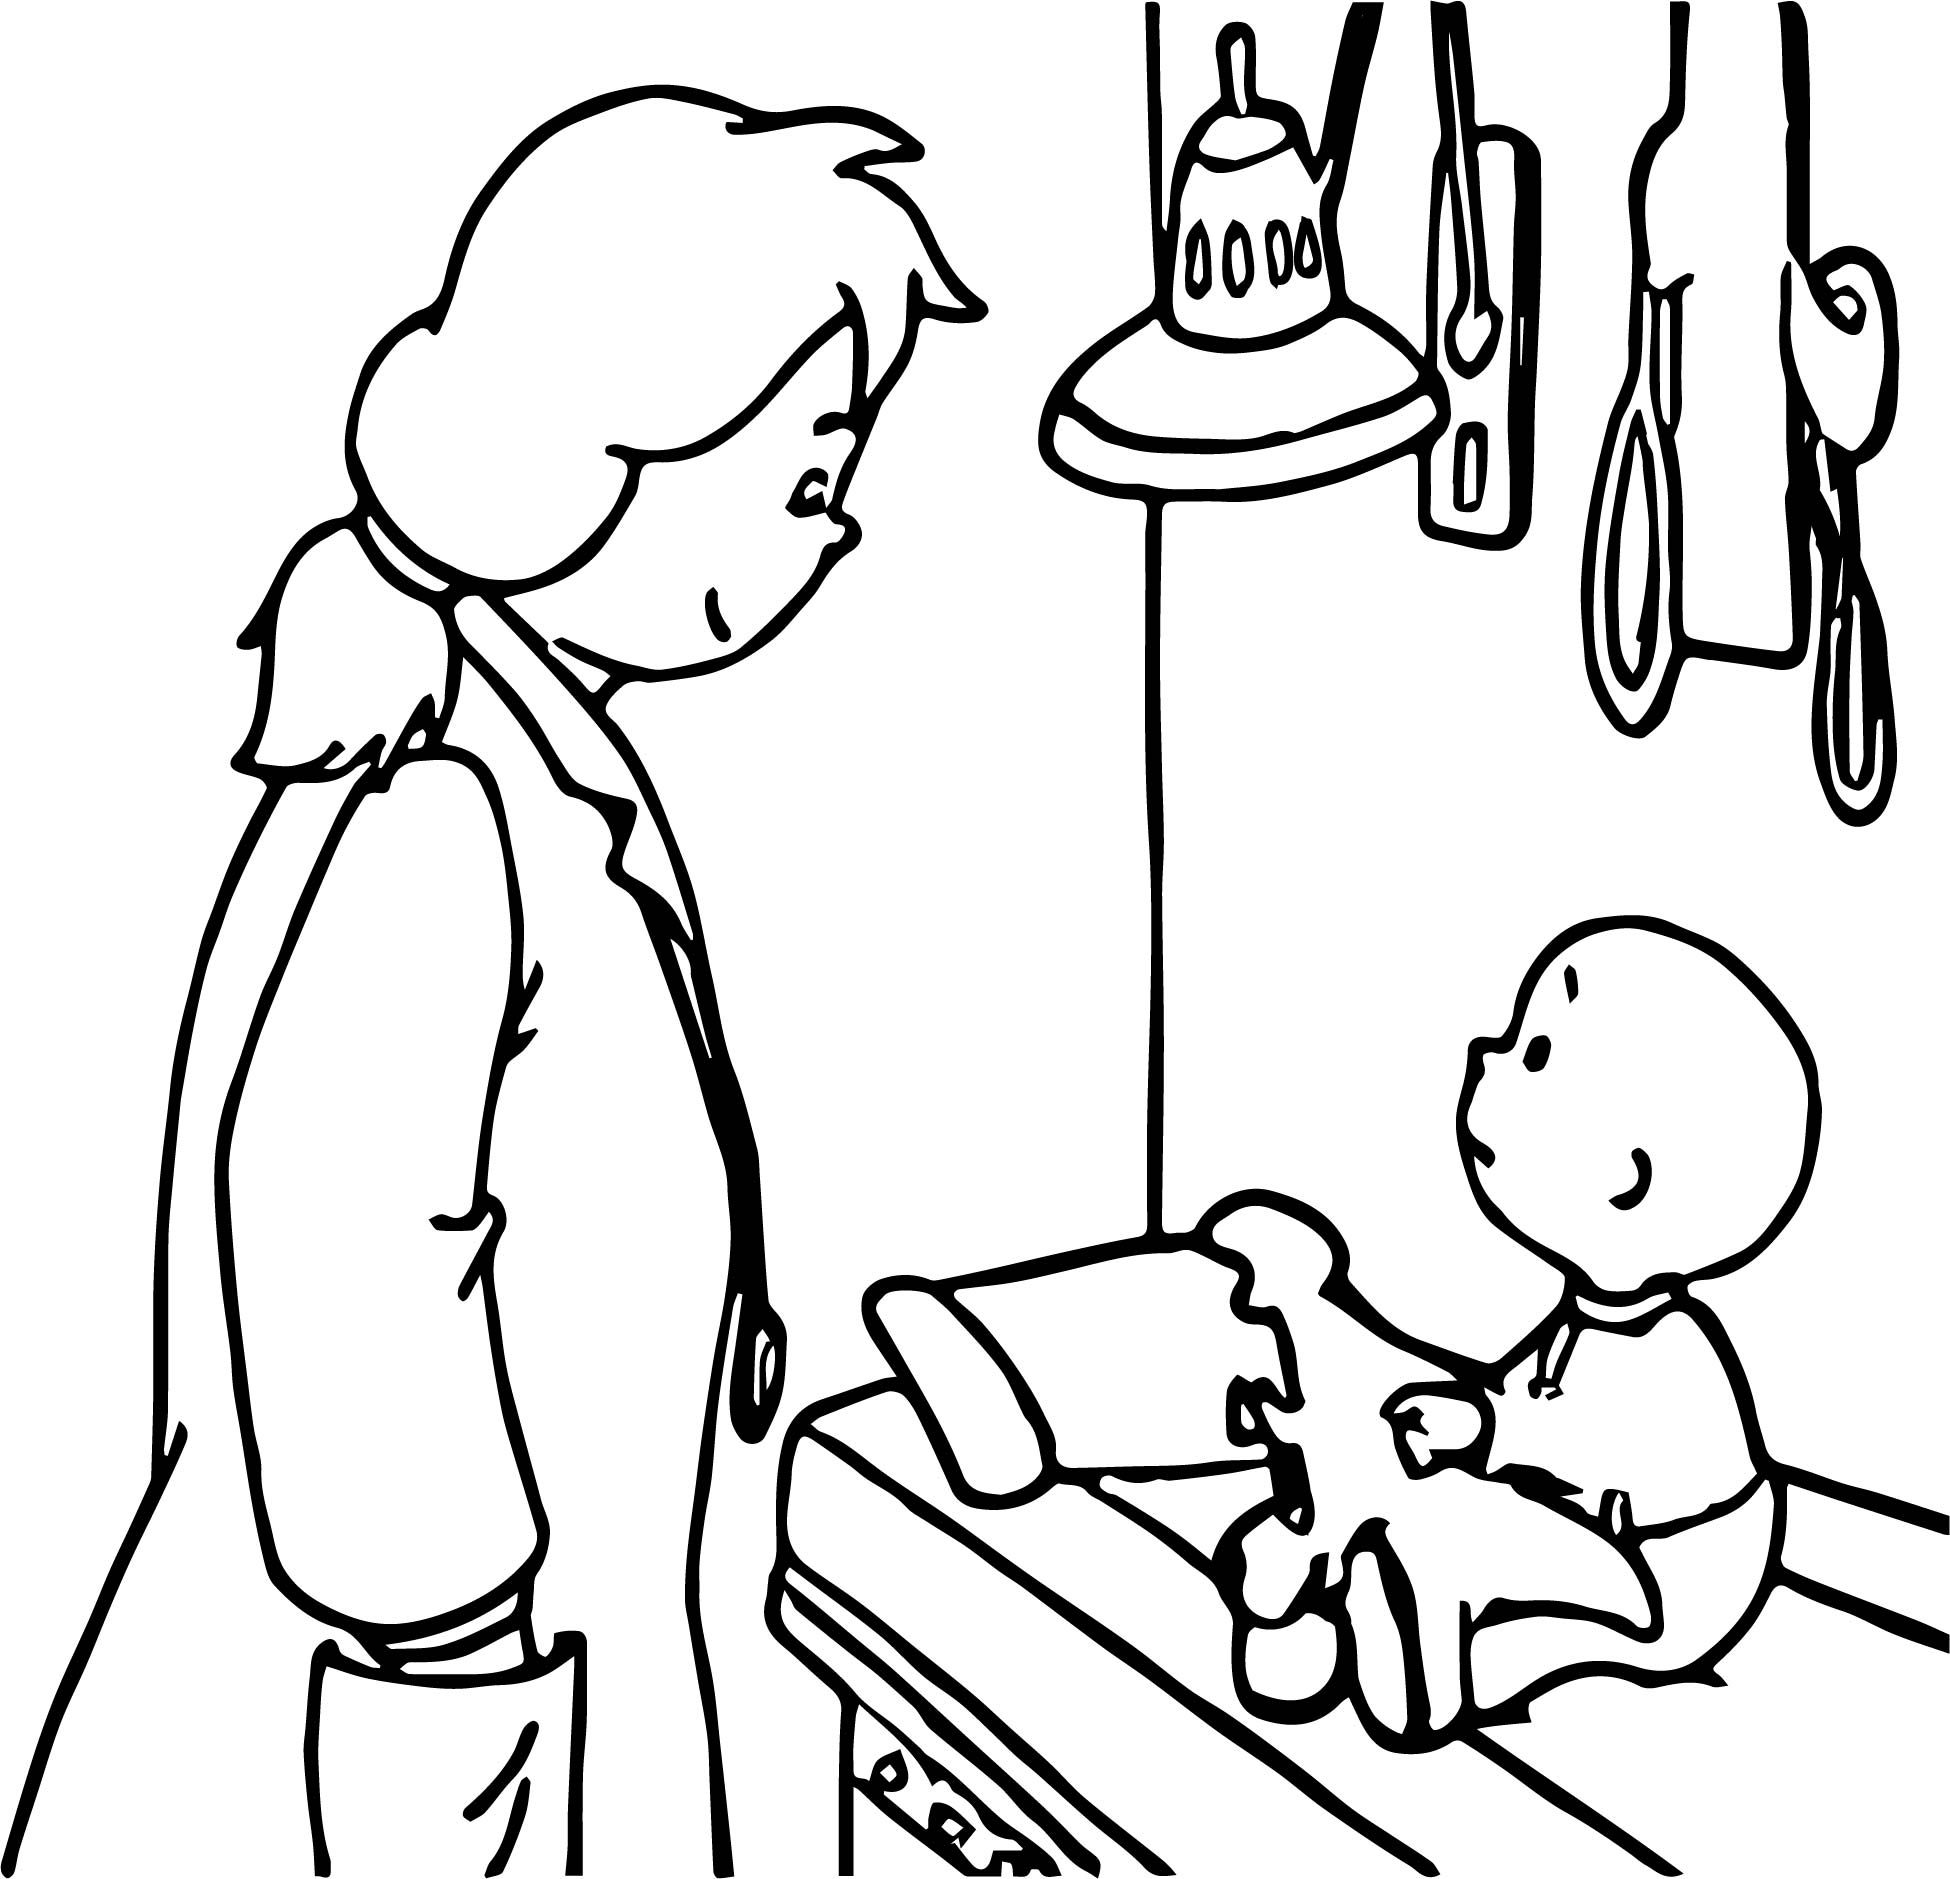 Children caillou doctor coloring page for Coloring page doctor